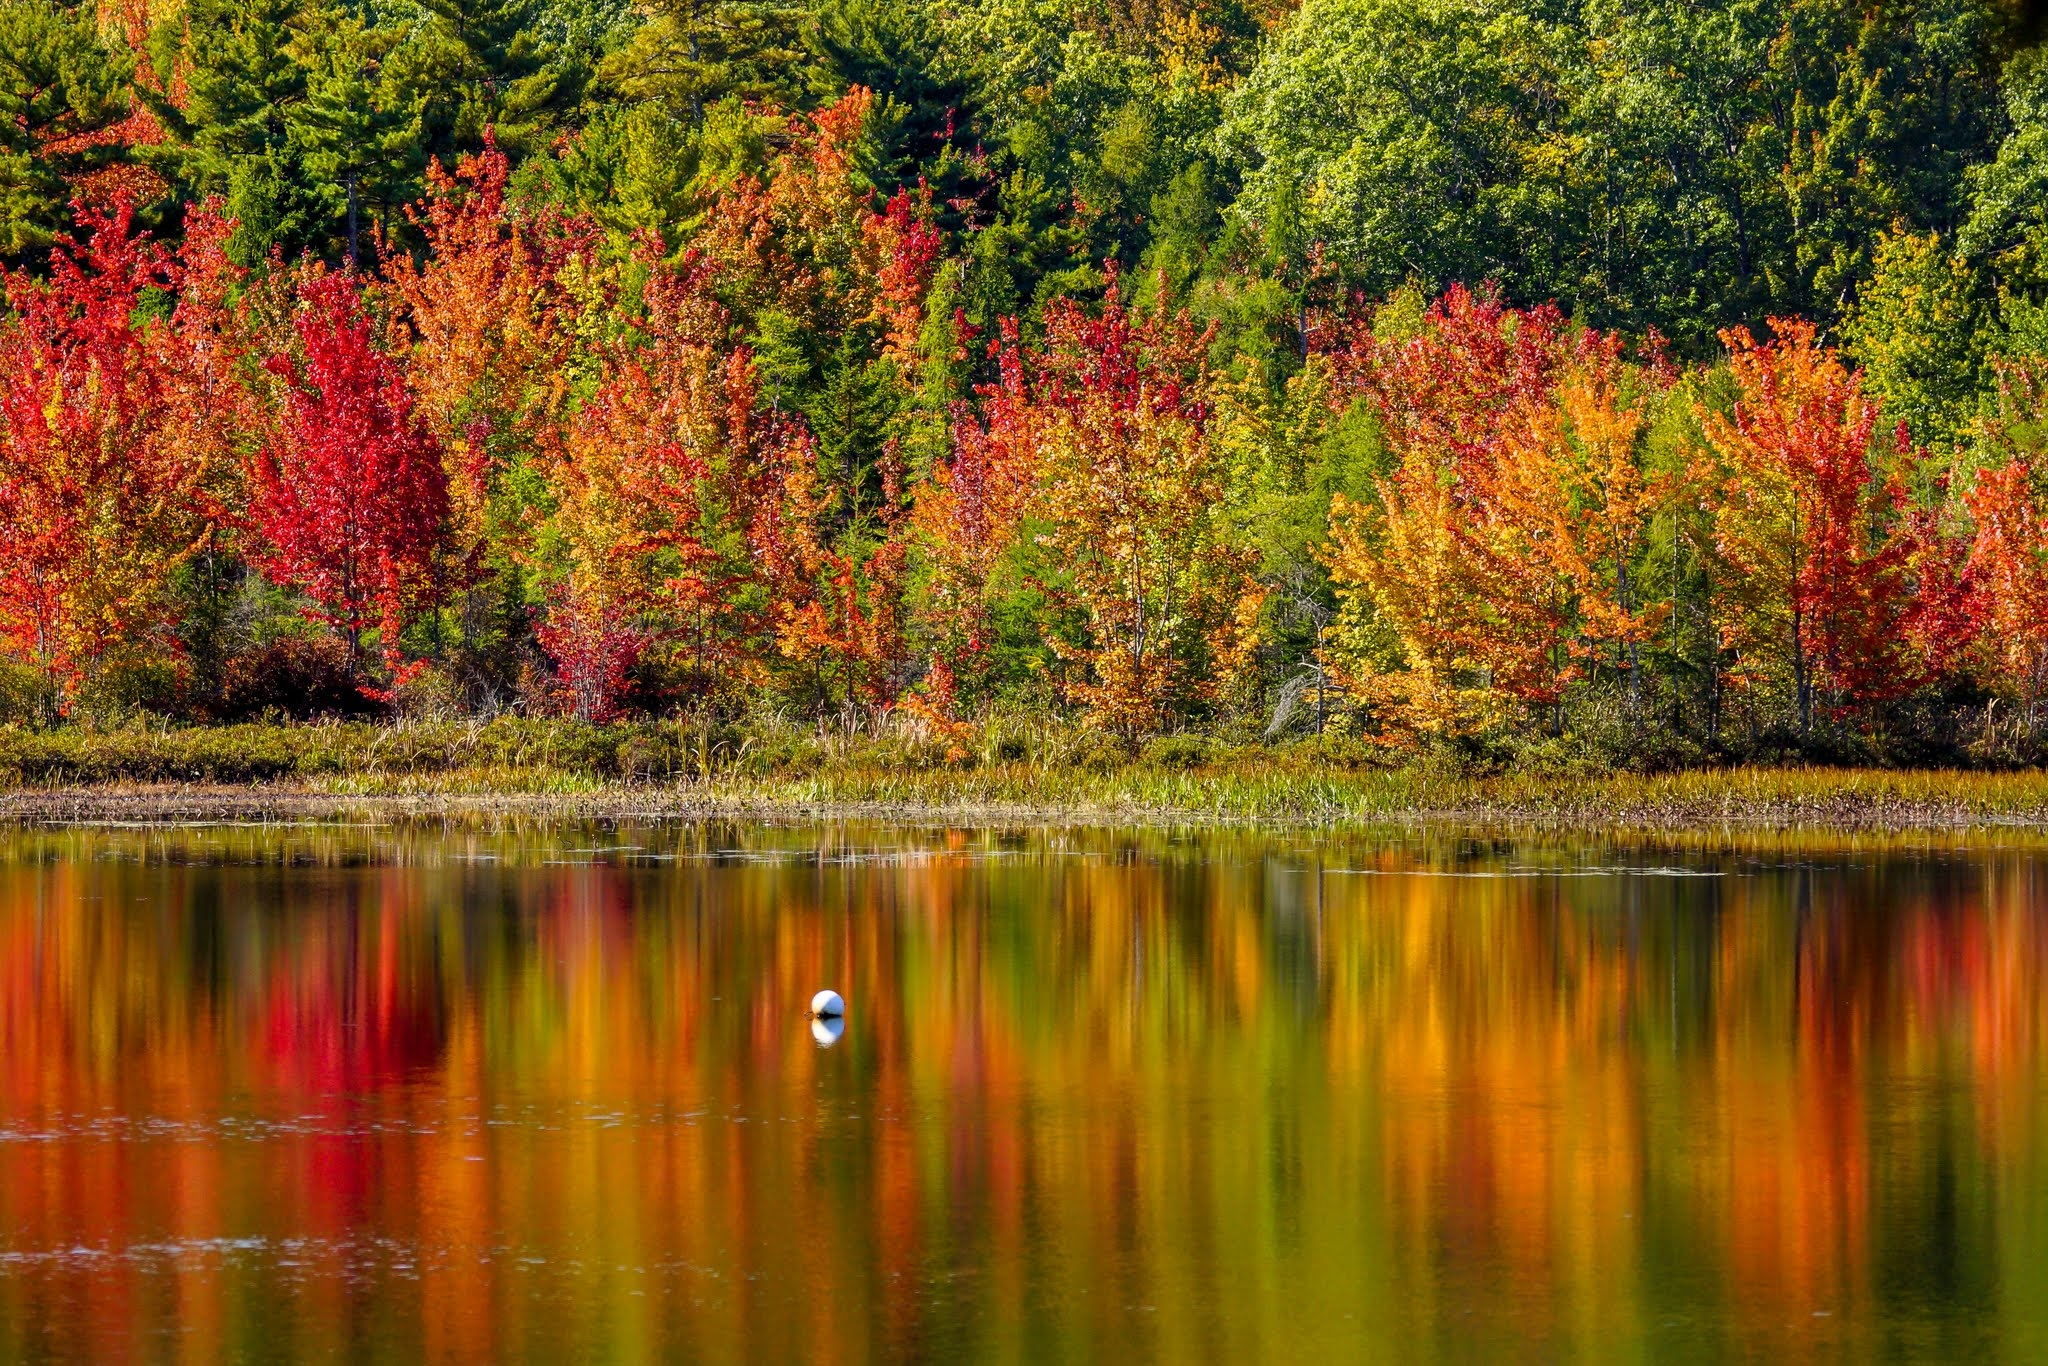 Fall foliage on Maine's midcoast. Photo by PJ Walter Photography.